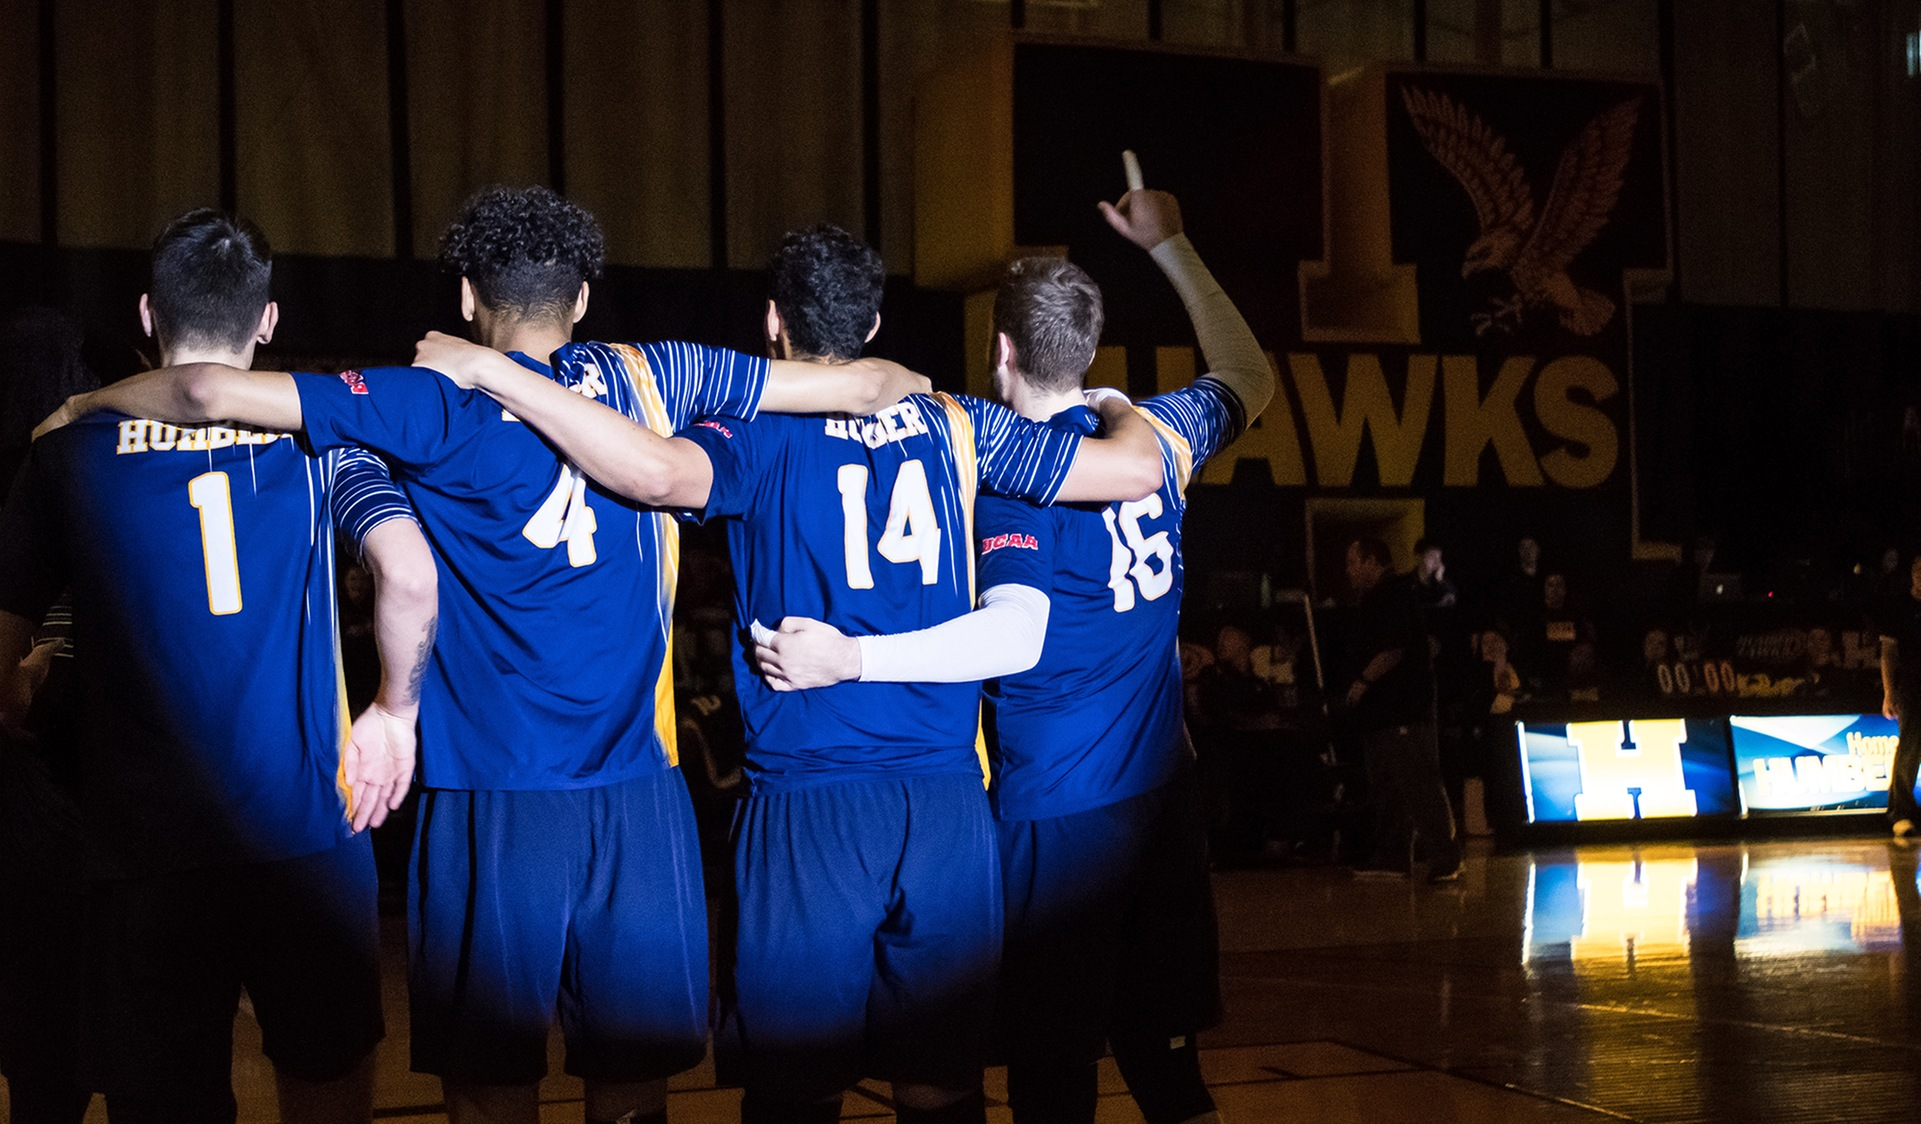 YEAR IN REVIEW: STREAKING HAWKS FLY TO OCAA SILVER MEDAL IN 17-18